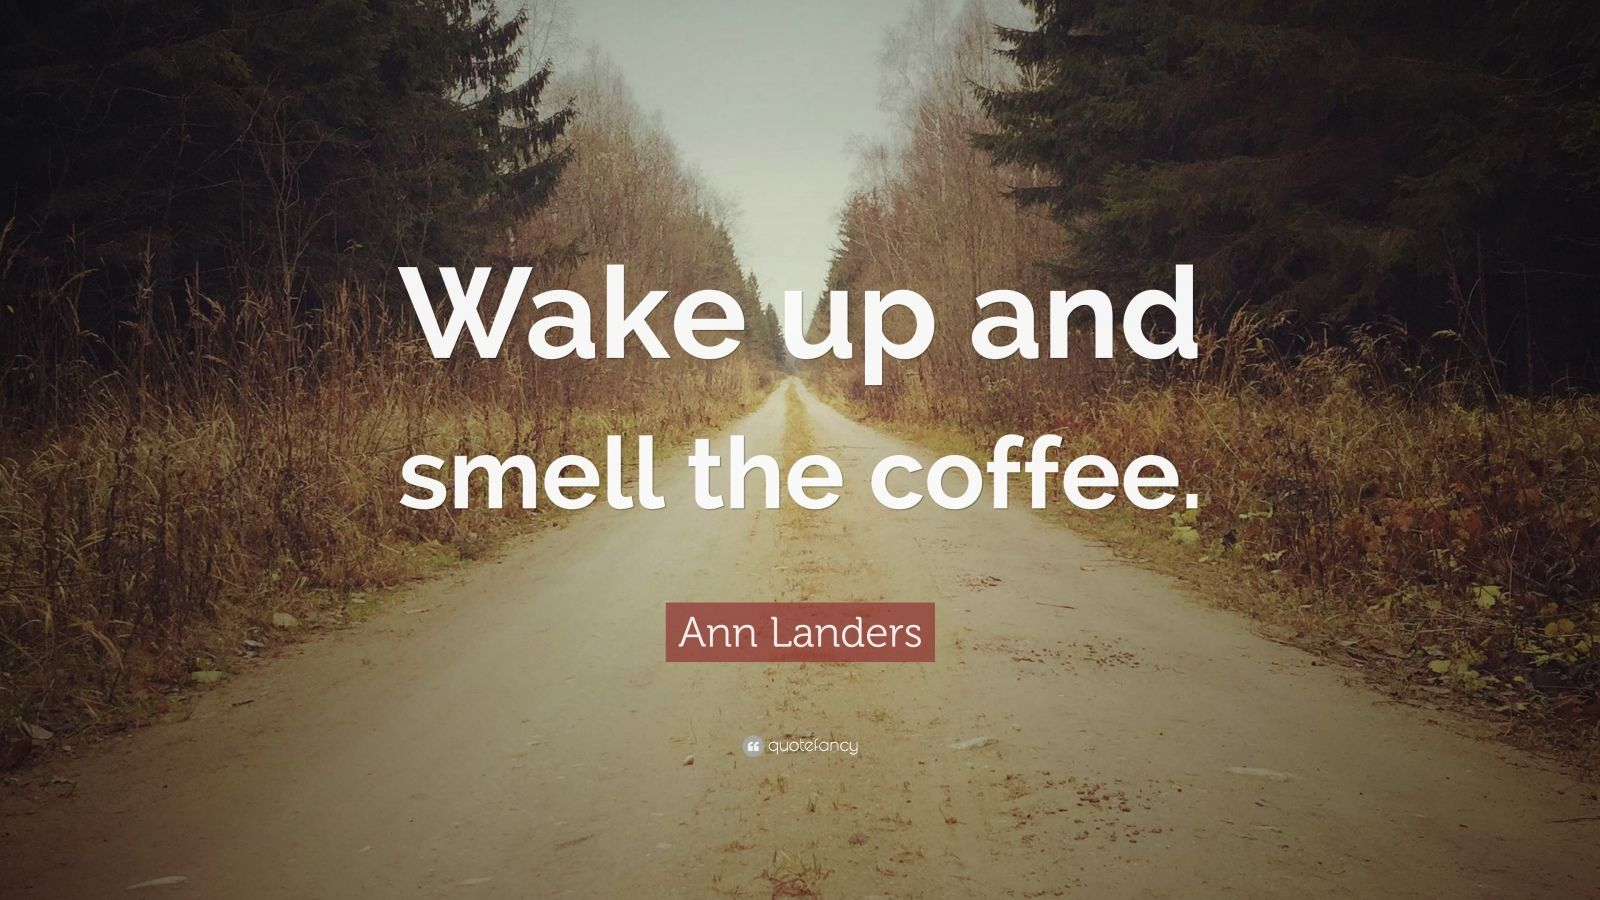 wake up and smell the coffee Find great deals on ebay for wake up and smell the coffee and wake up smell the coffee shop with confidence.